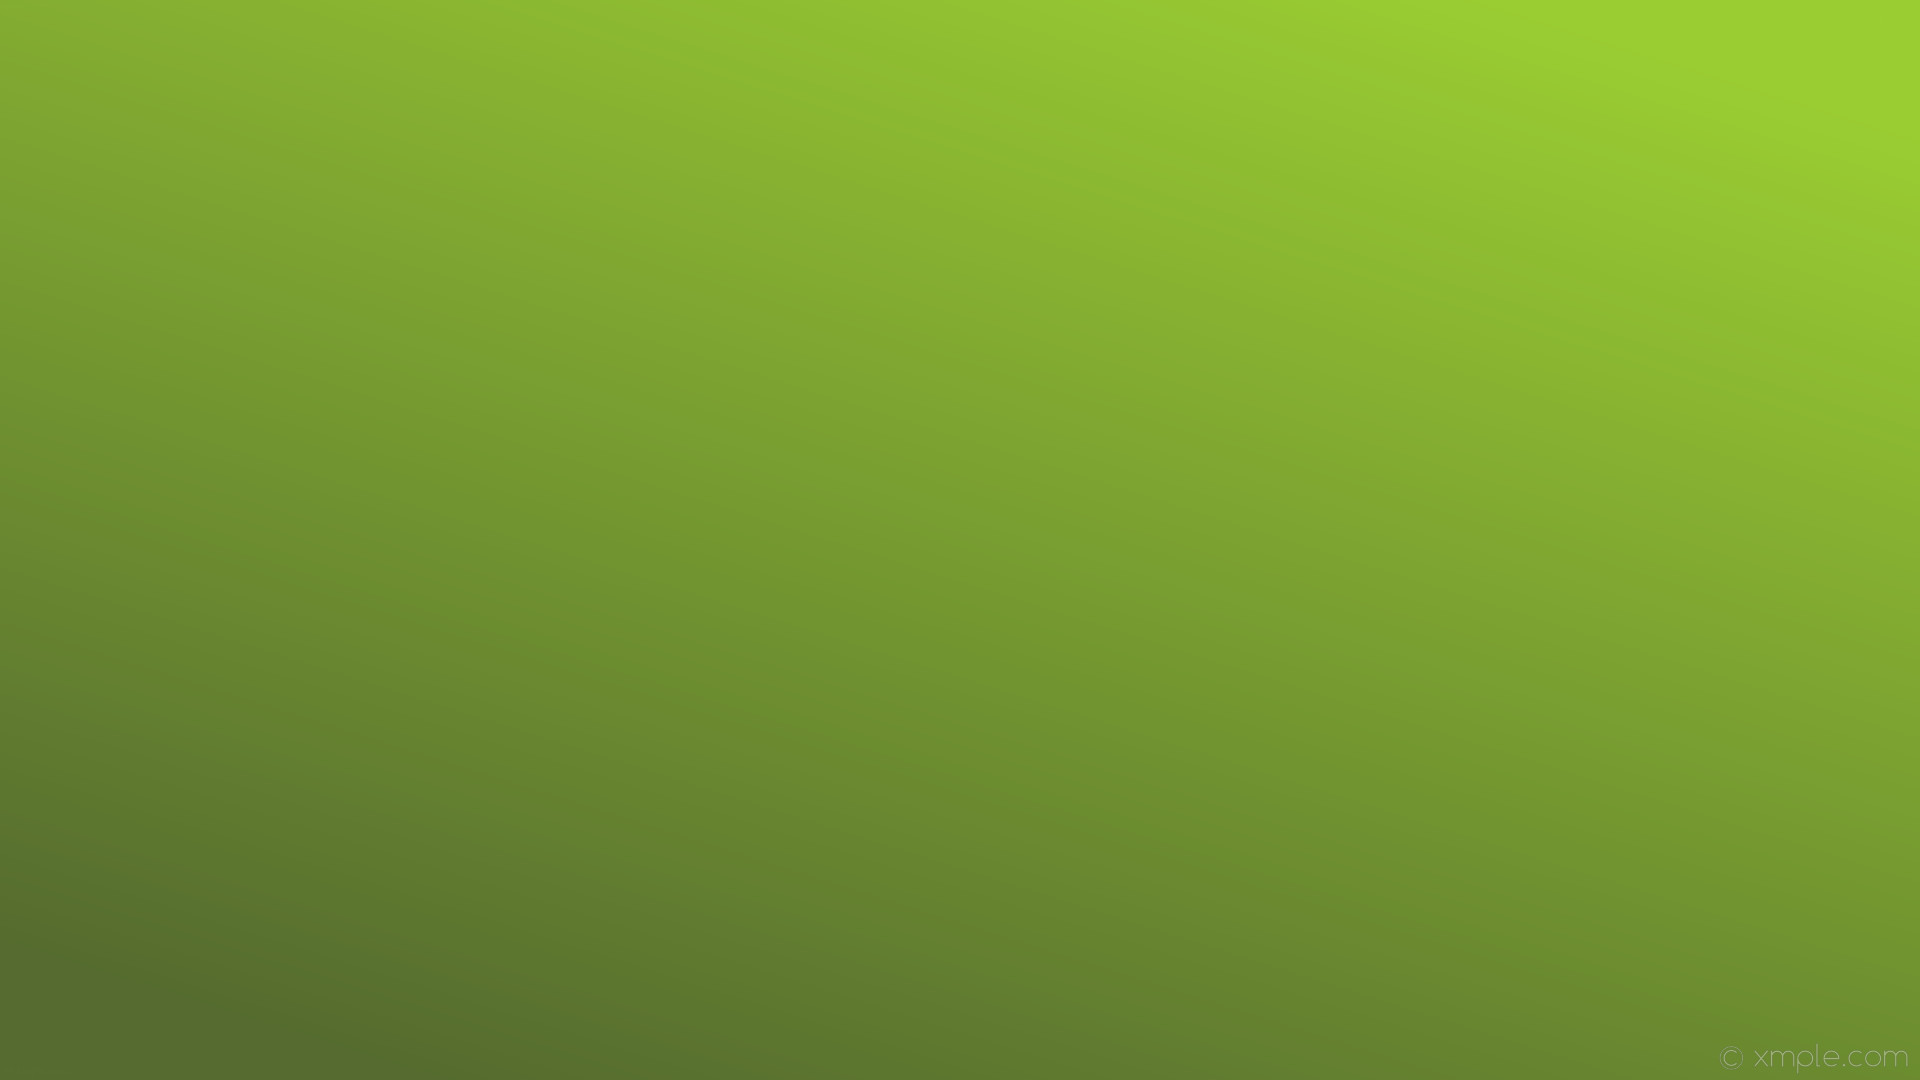 Res: 1920x1080, wallpaper linear green gradient yellow green dark olive green #9acd32  #556b2f 45°